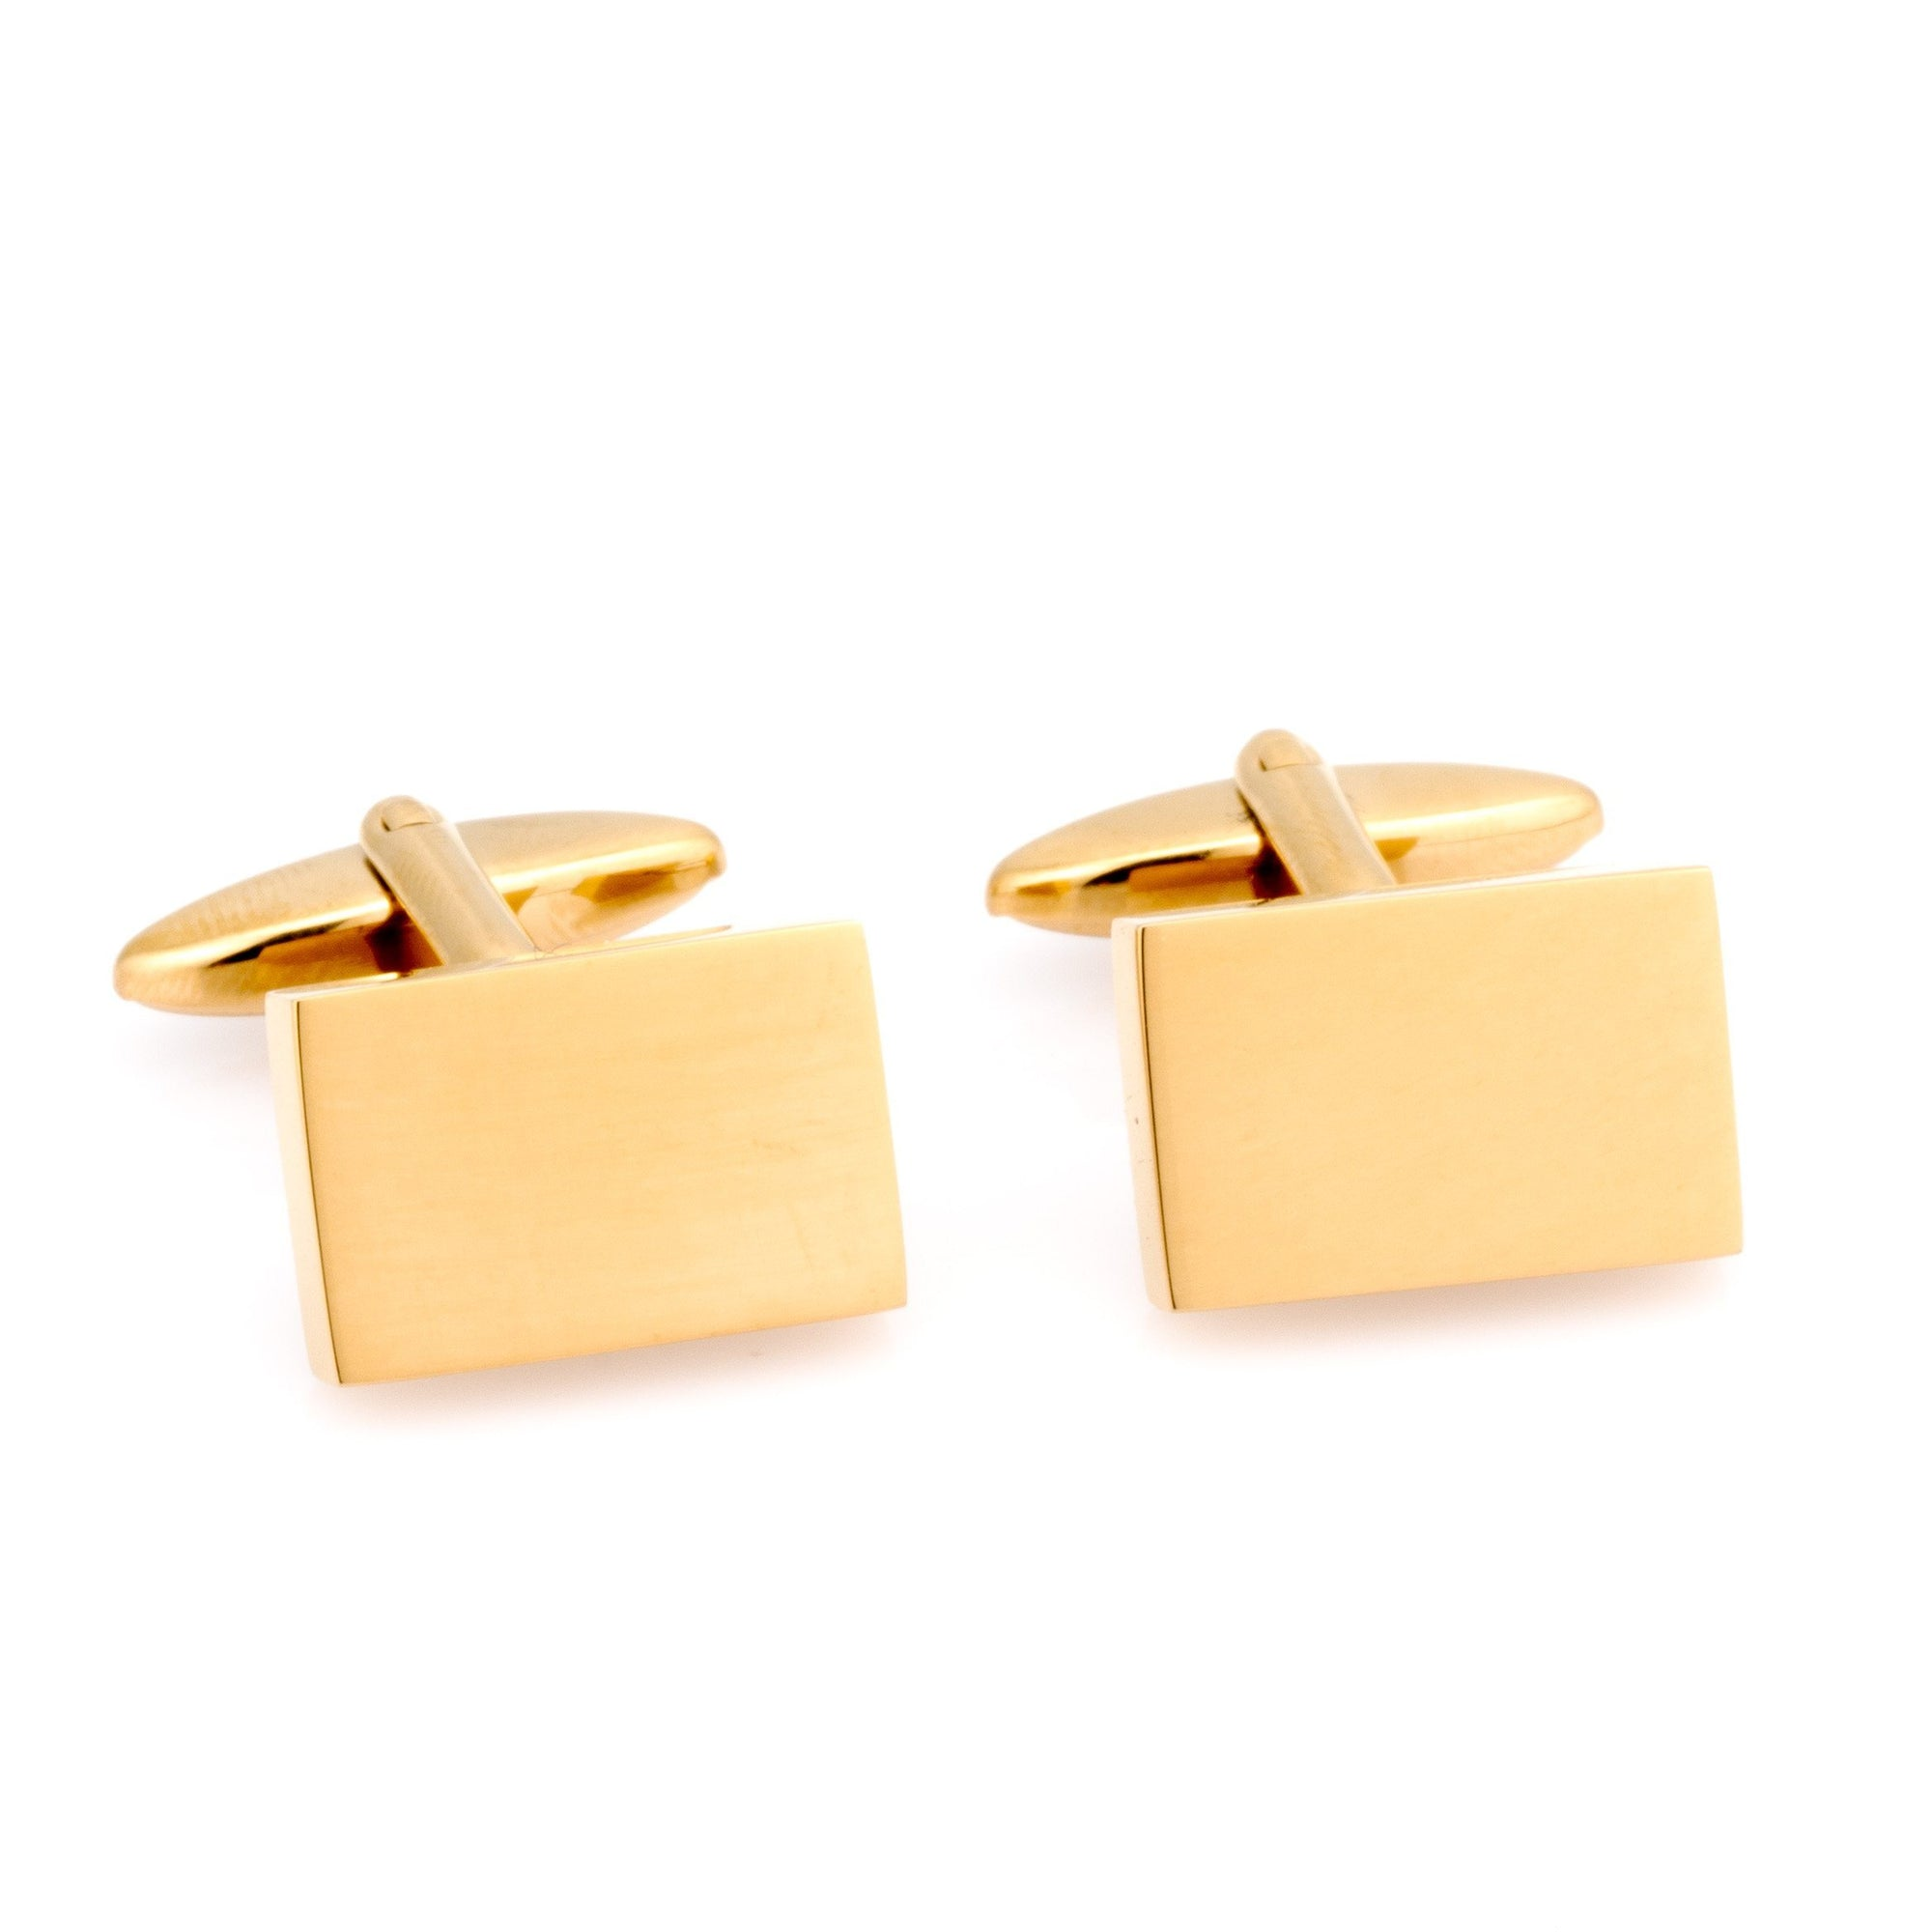 Shiny Gold Rectangle Engraveable Cufflinks Classic & Modern Cufflinks Clinks Australia Default